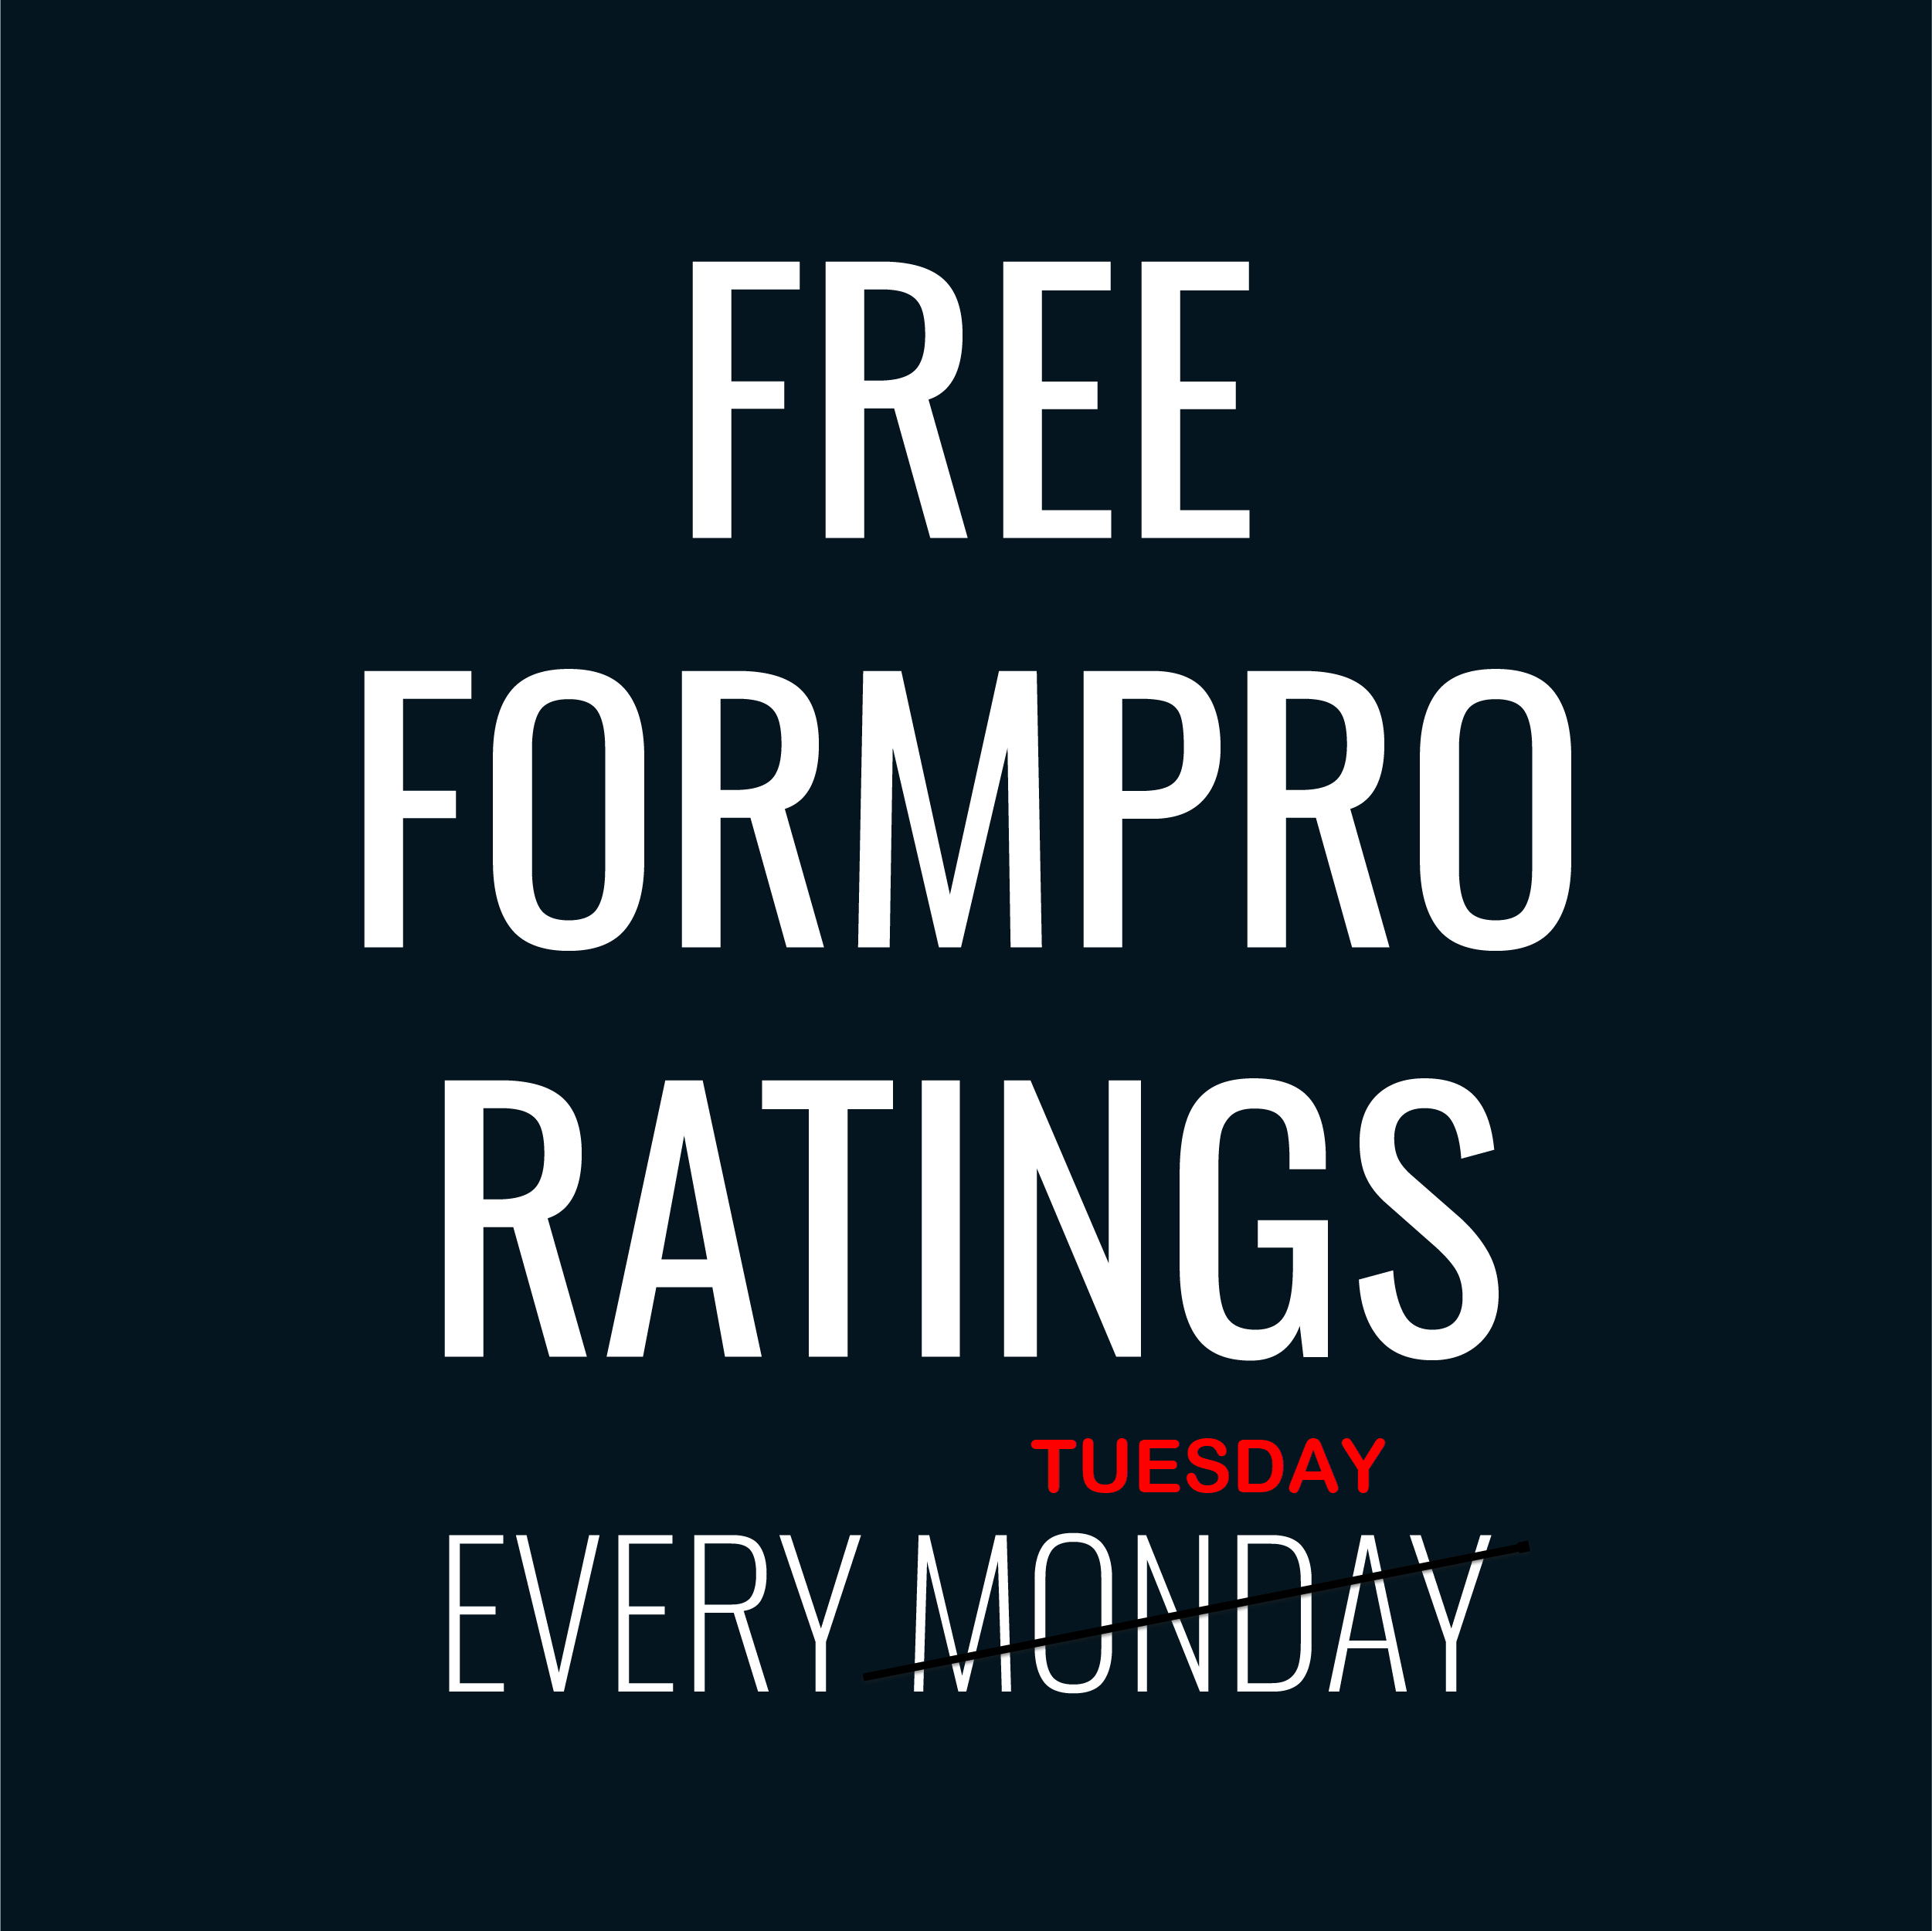 Free Greyhound Ratings Monday 19 April 2021